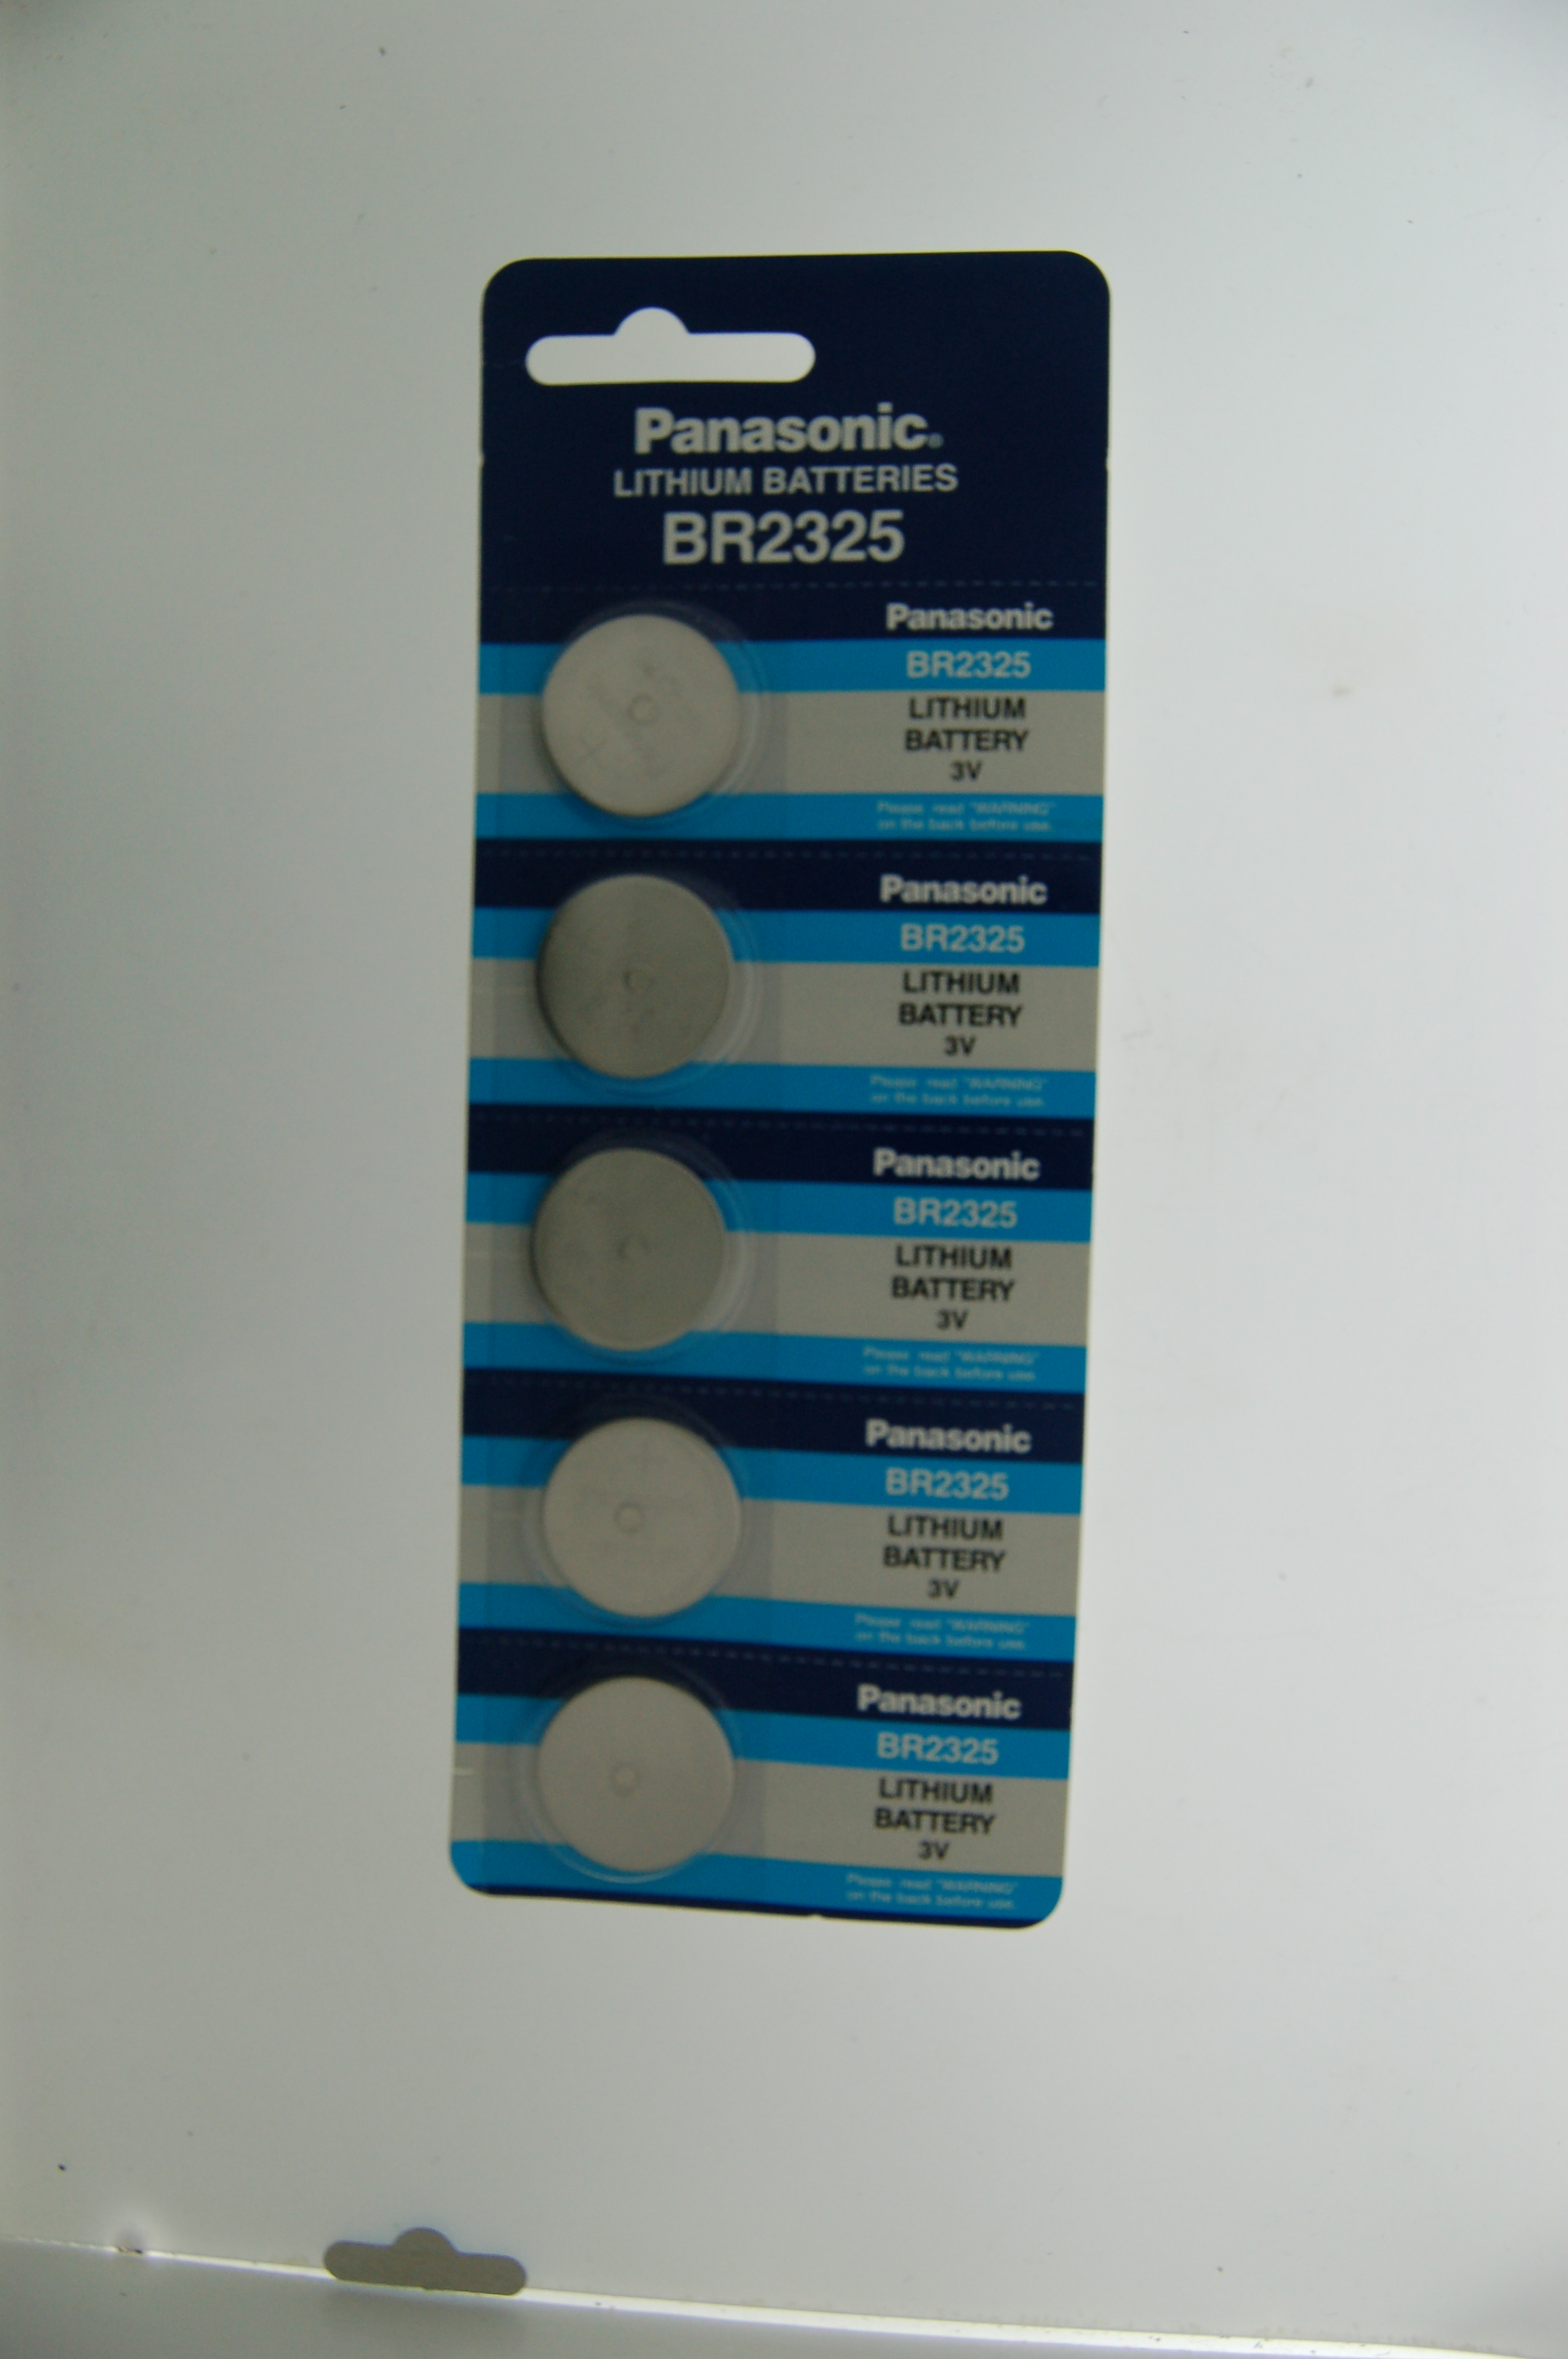 Panasonic Lithium Battery BR2325/CR2325